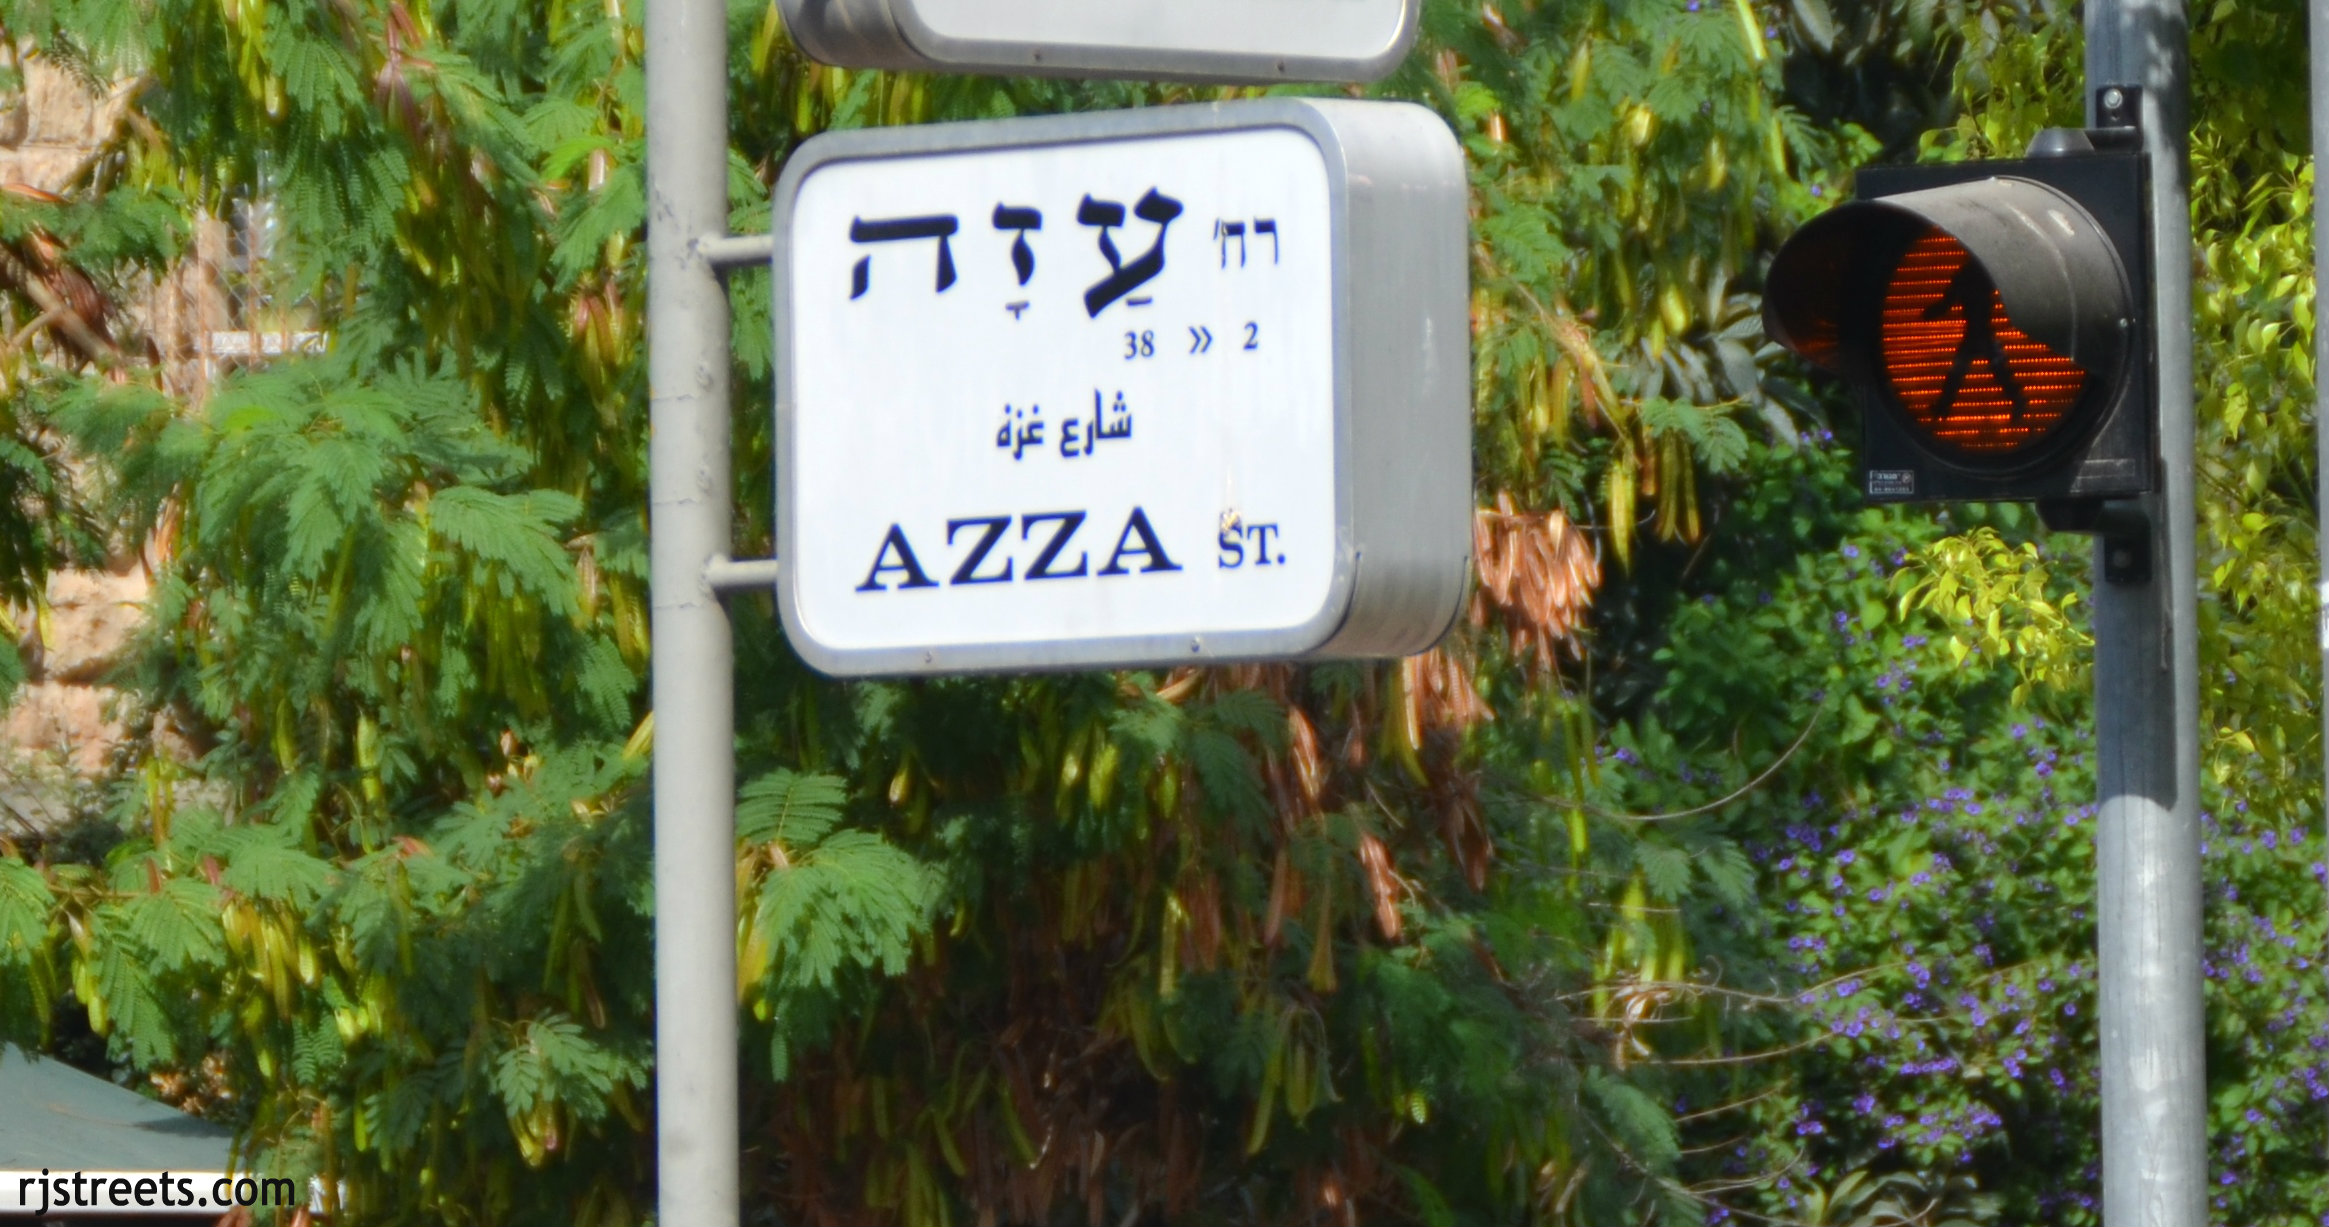 image street sign hebrew